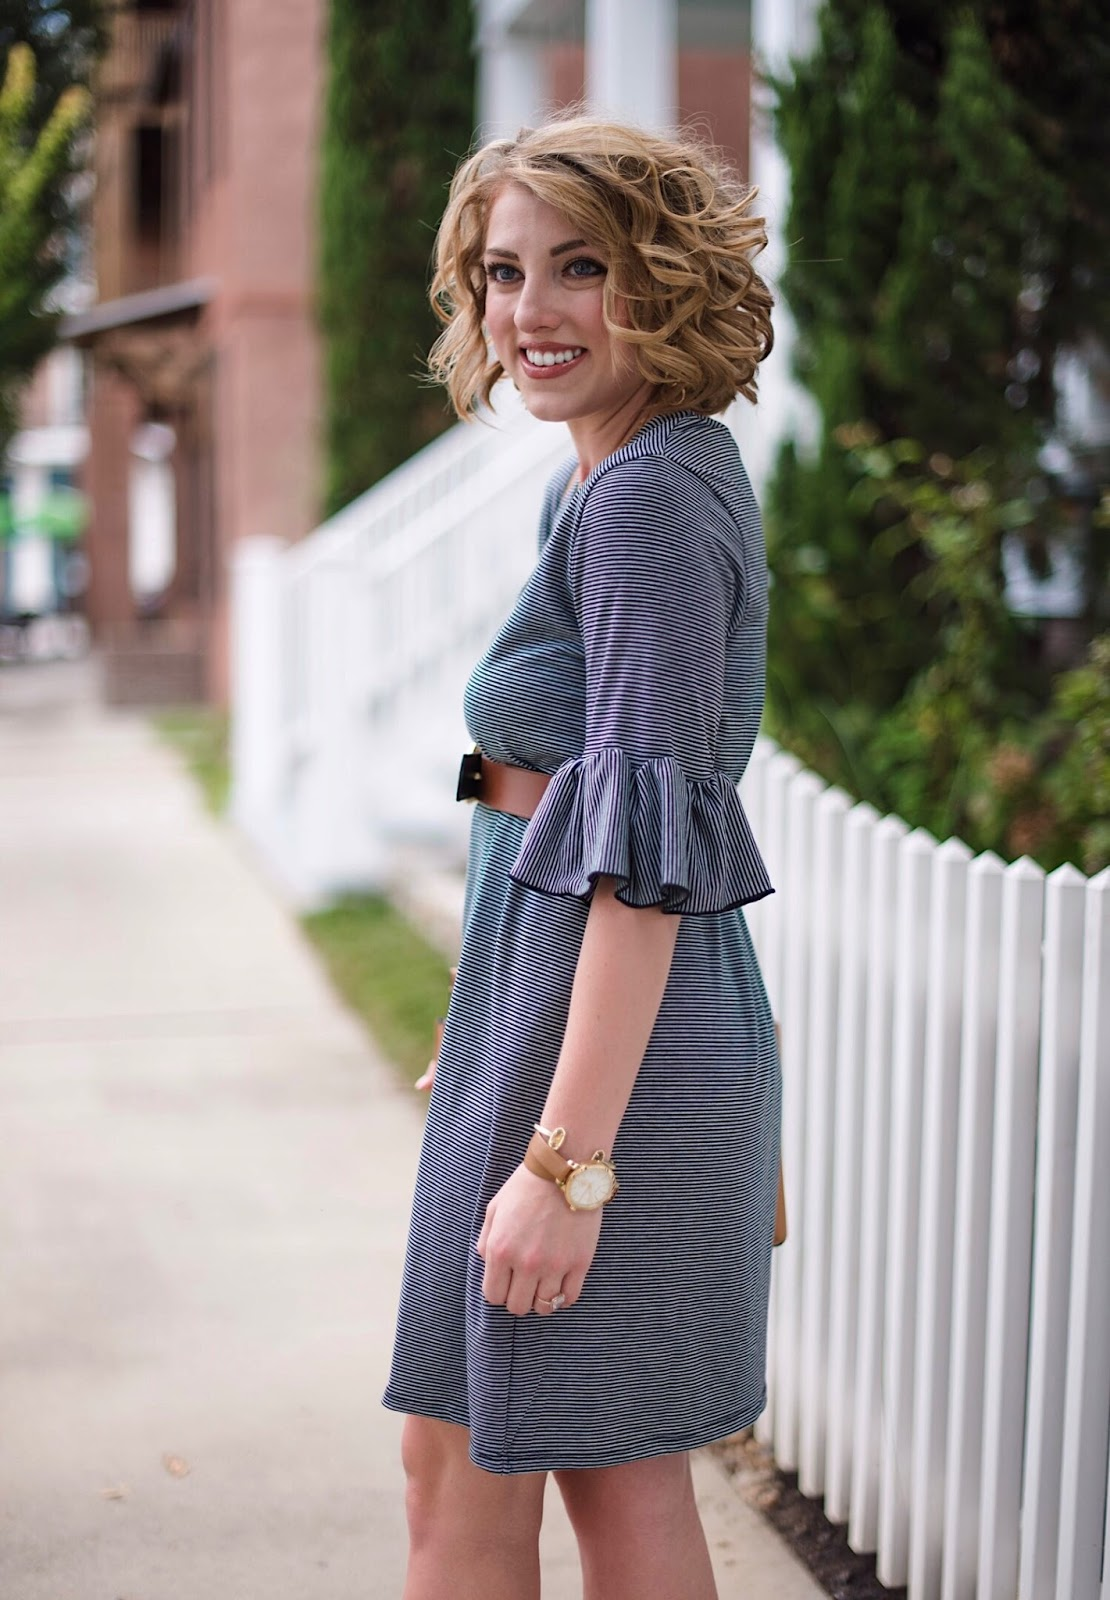 Ruffle Sleeve Dress - Click through to see more on Something Delightful Blog!